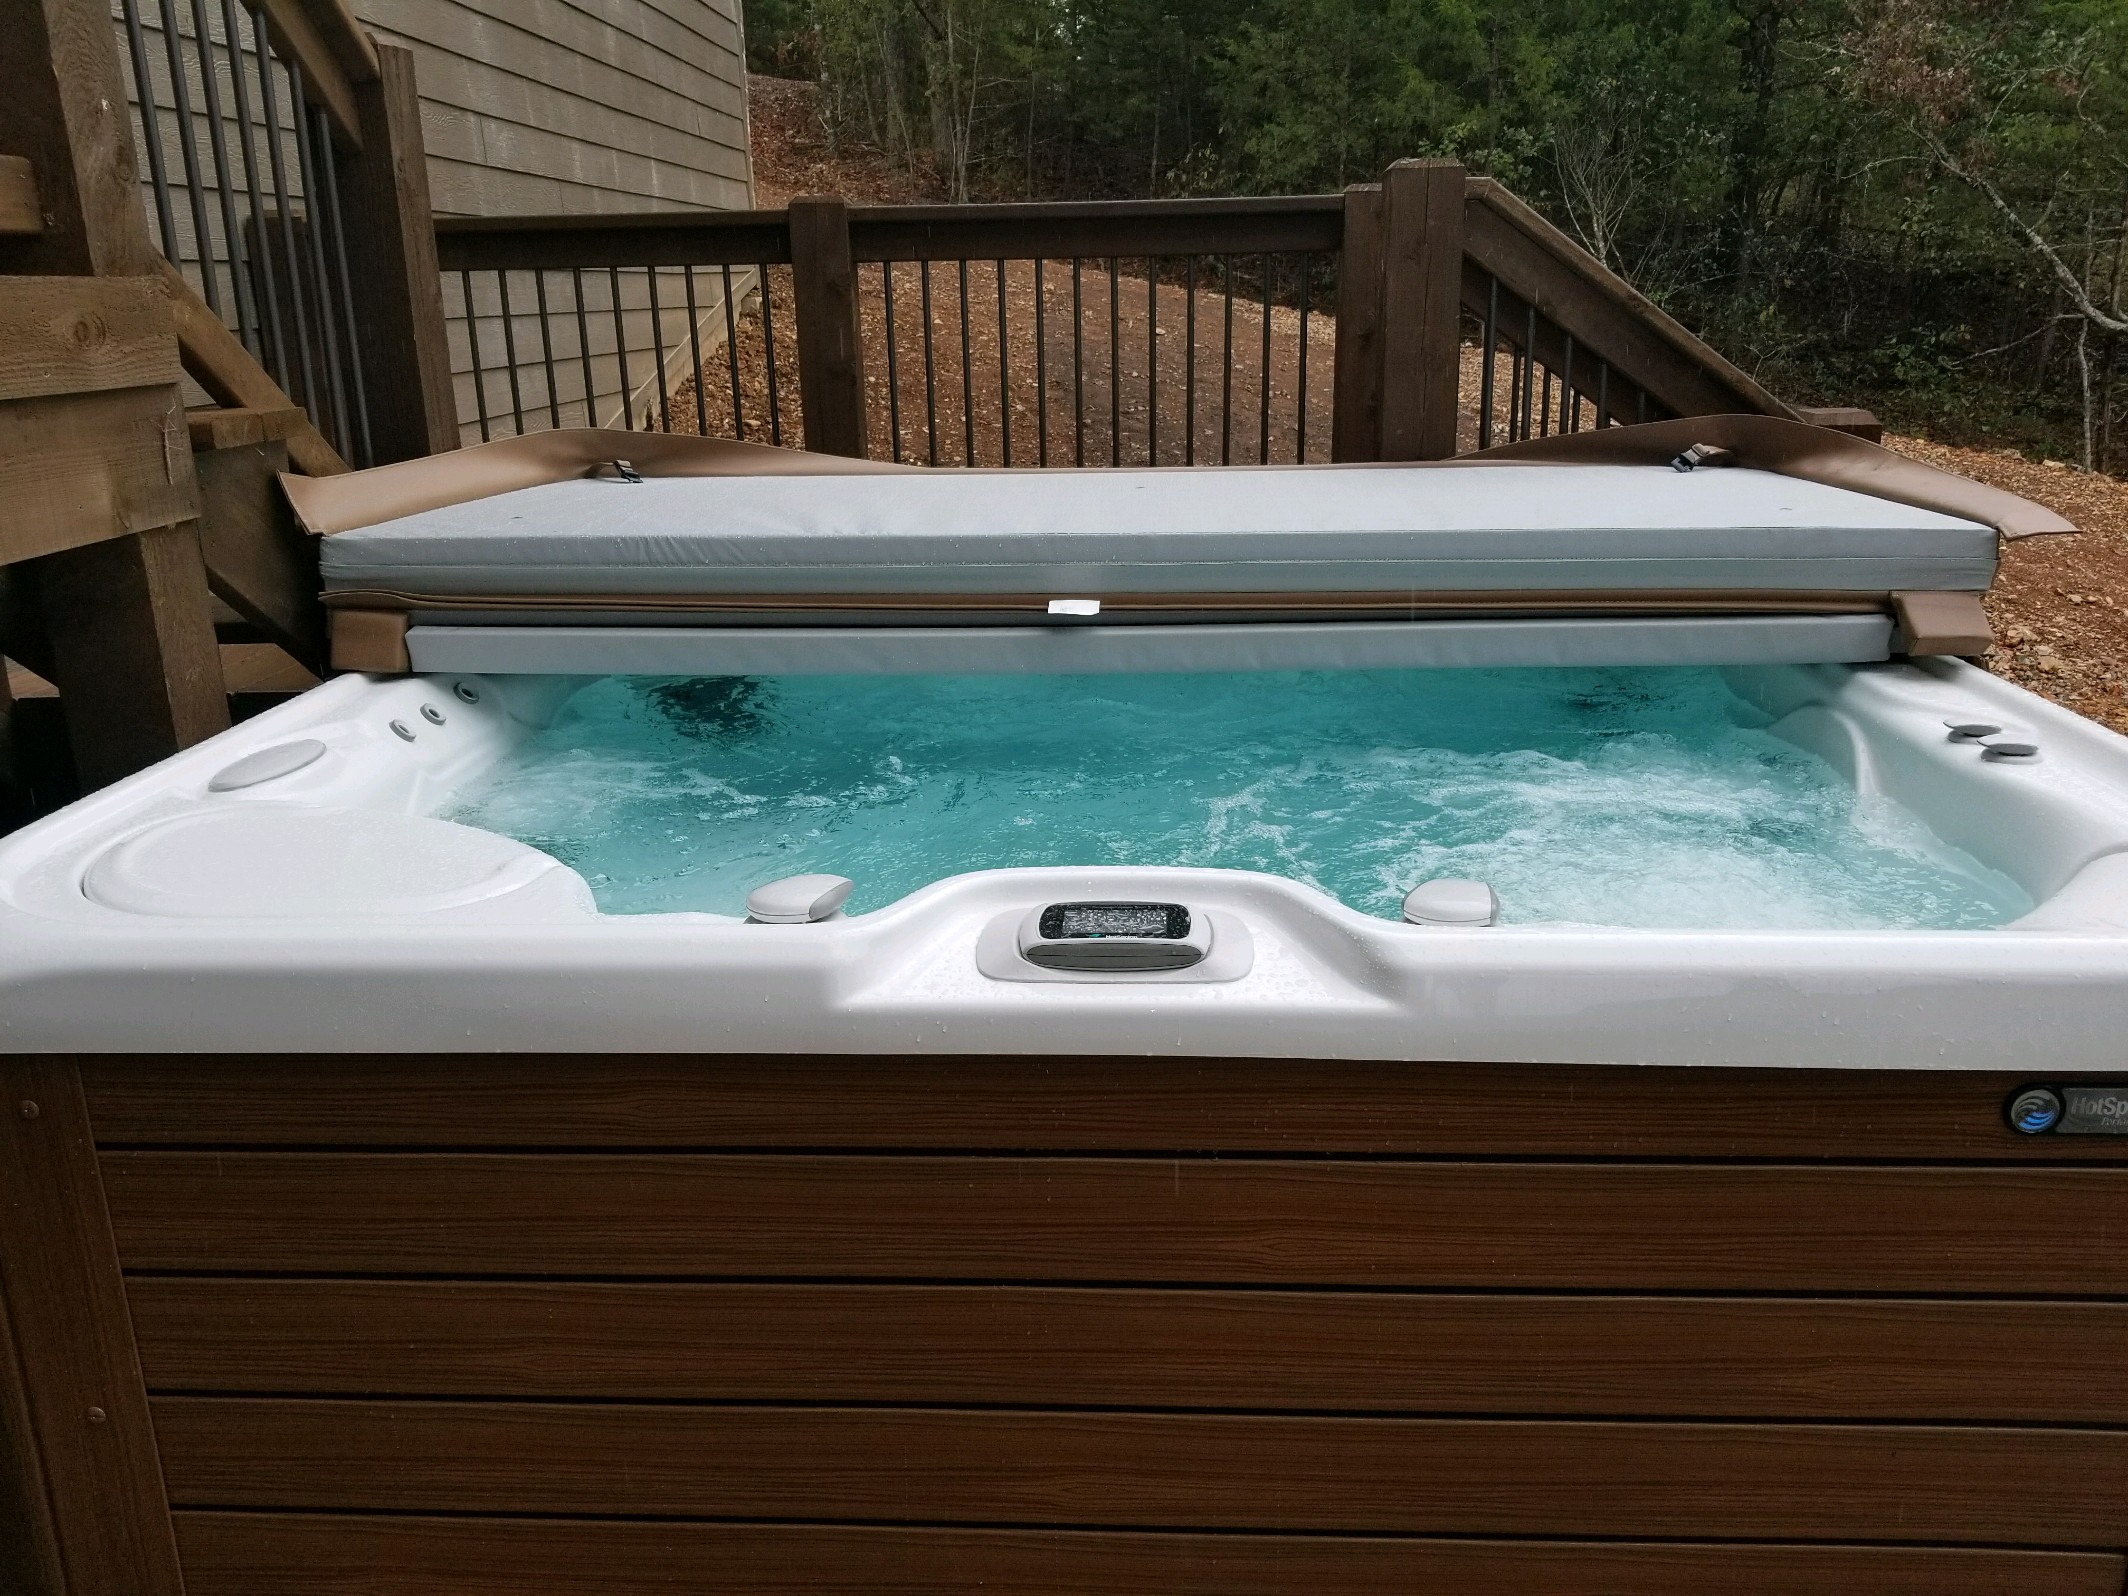 Jacuzzi Pool Service Hot Tub Installations Branson Hot Tubs And Pools